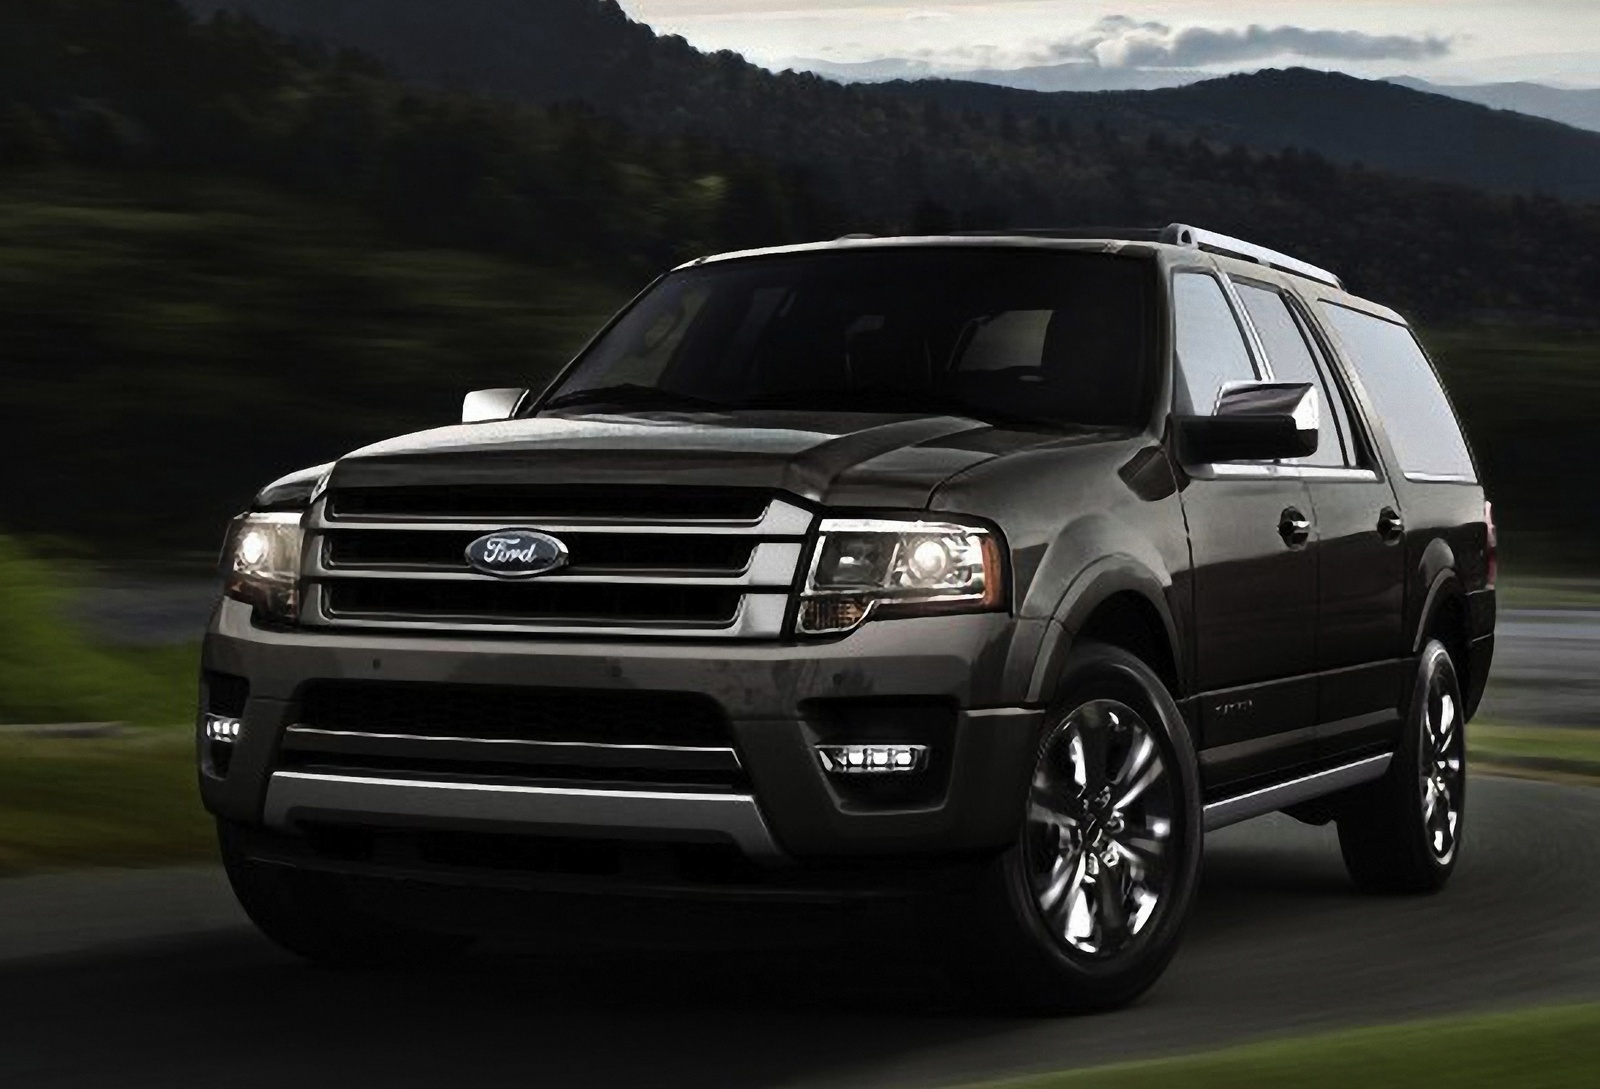 new 2015 ford expedition for sale richmond va cargurus. Cars Review. Best American Auto & Cars Review